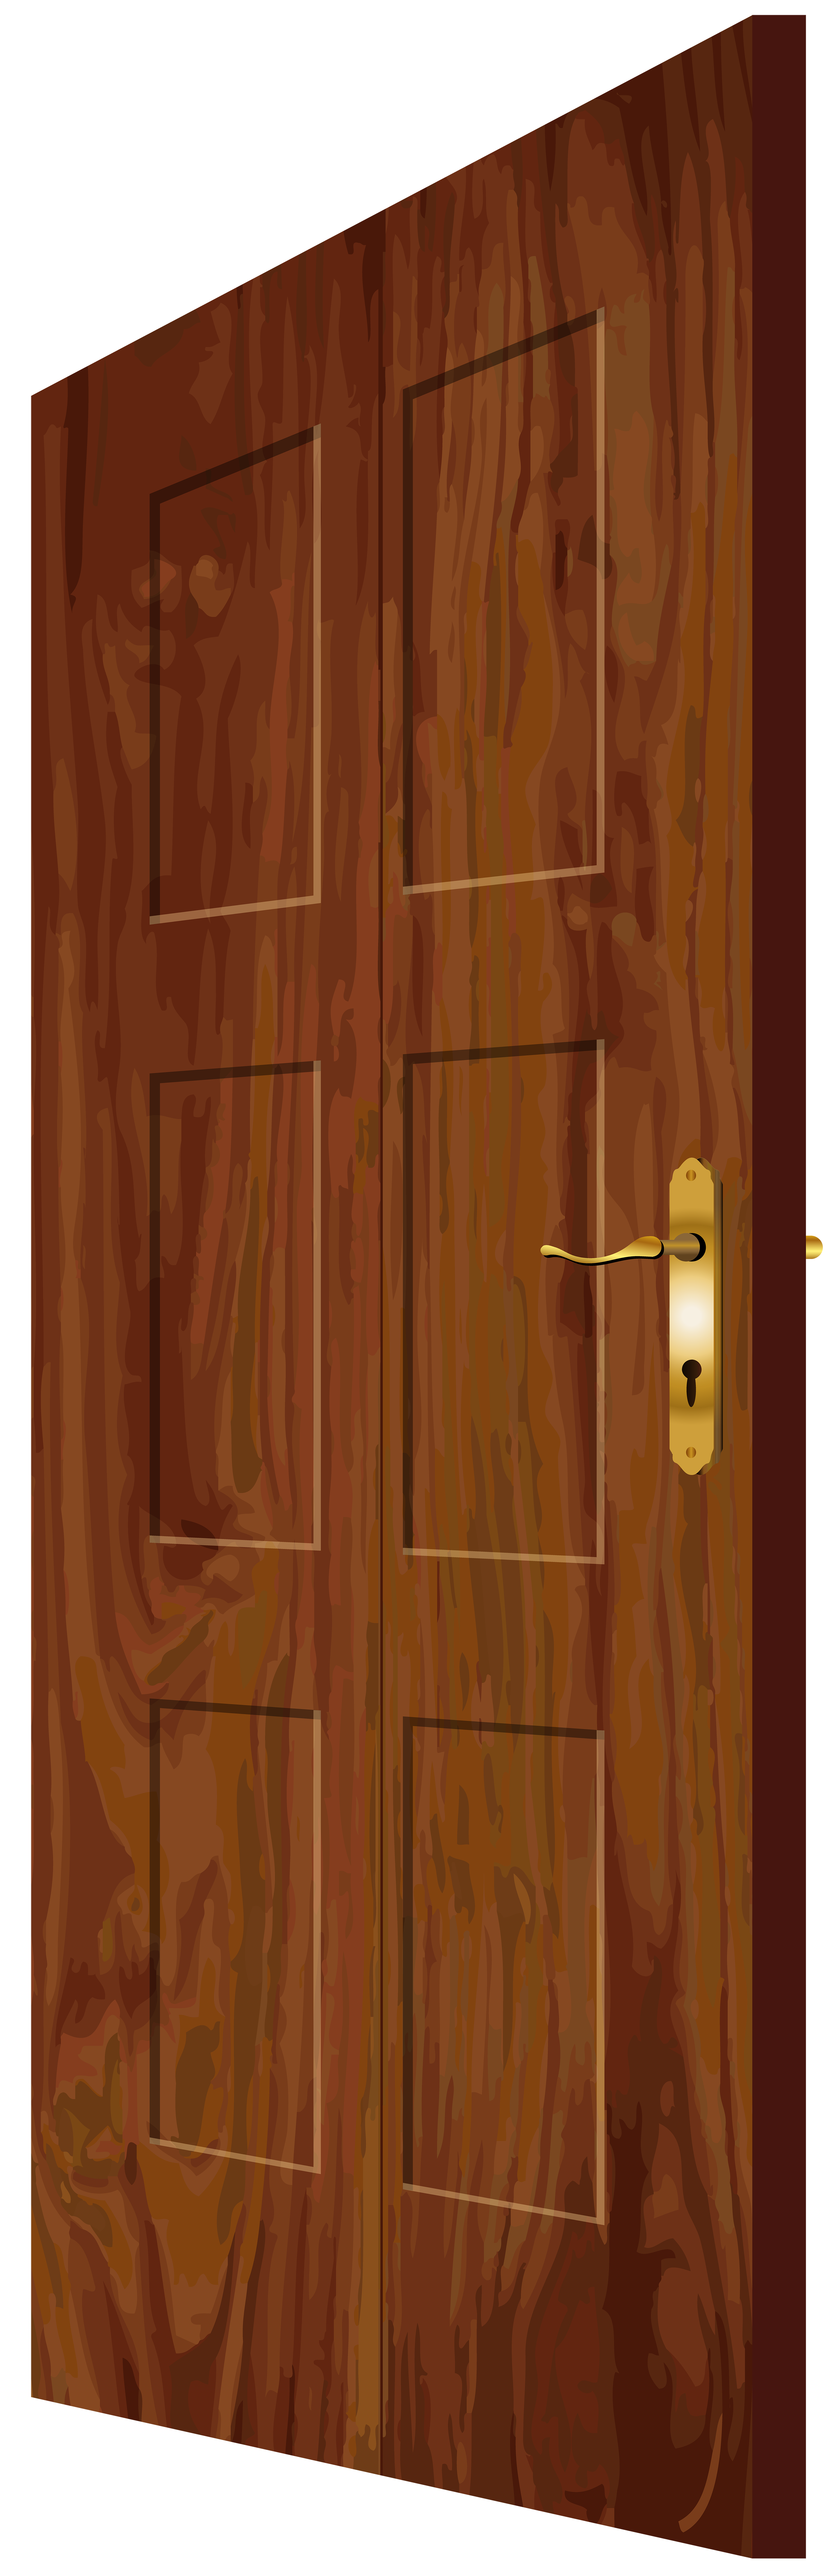 Wood house clipart free stock Wooden Door PNG Clip Art - Best WEB Clipart free stock